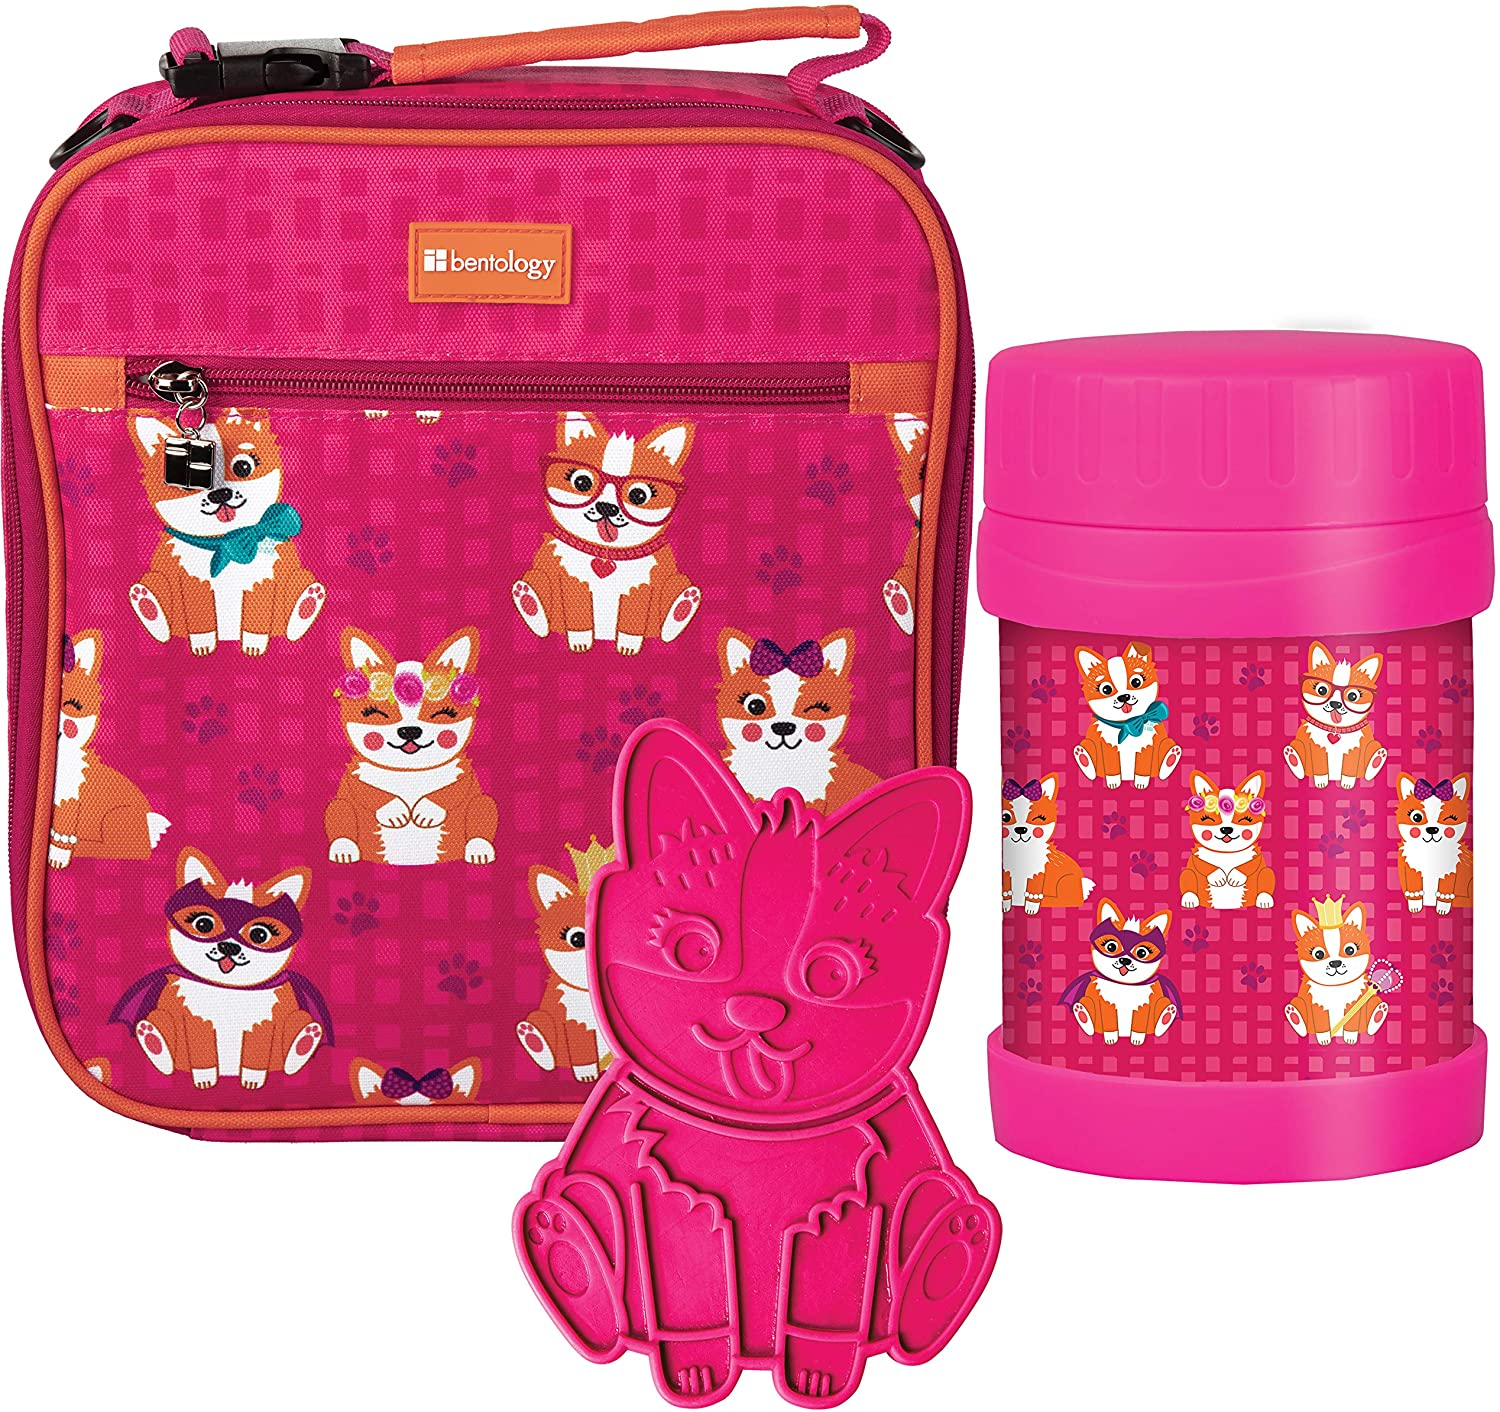 Lunch Box Backpack Kit w 13 oz Food Jar Container & Hard Ice Pack - Reusable Insulated Lunch Bag Meal Tote w Back Straps & Handle for School for Kids, Toddlers – Works w Bento Box, PVC Free – Corgi